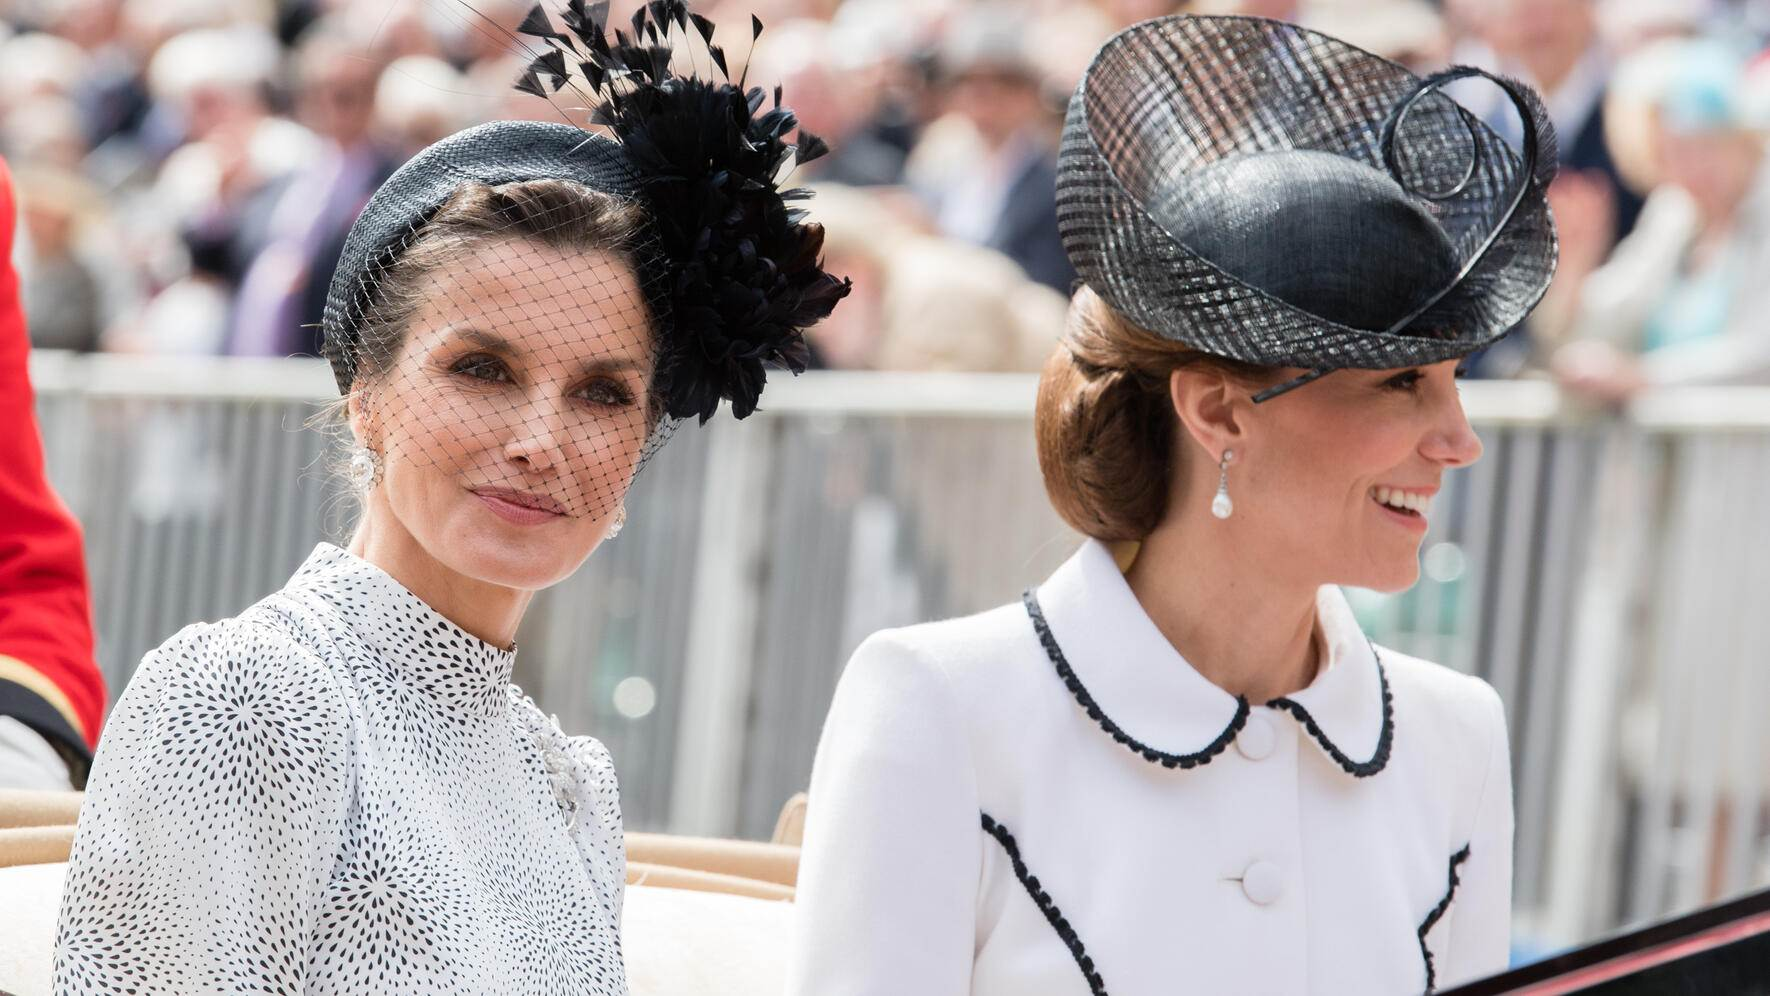 WINDSOR, ENGLAND - JUNE 17:  Queen Letizia of Spain and Catherine, Duchess of Cambridge attend the Order of the Garter Service at St George's Chapel on June 17, 2019 in Windsor, England.  (Photo by Pool/Samir Hussein/WireImage)